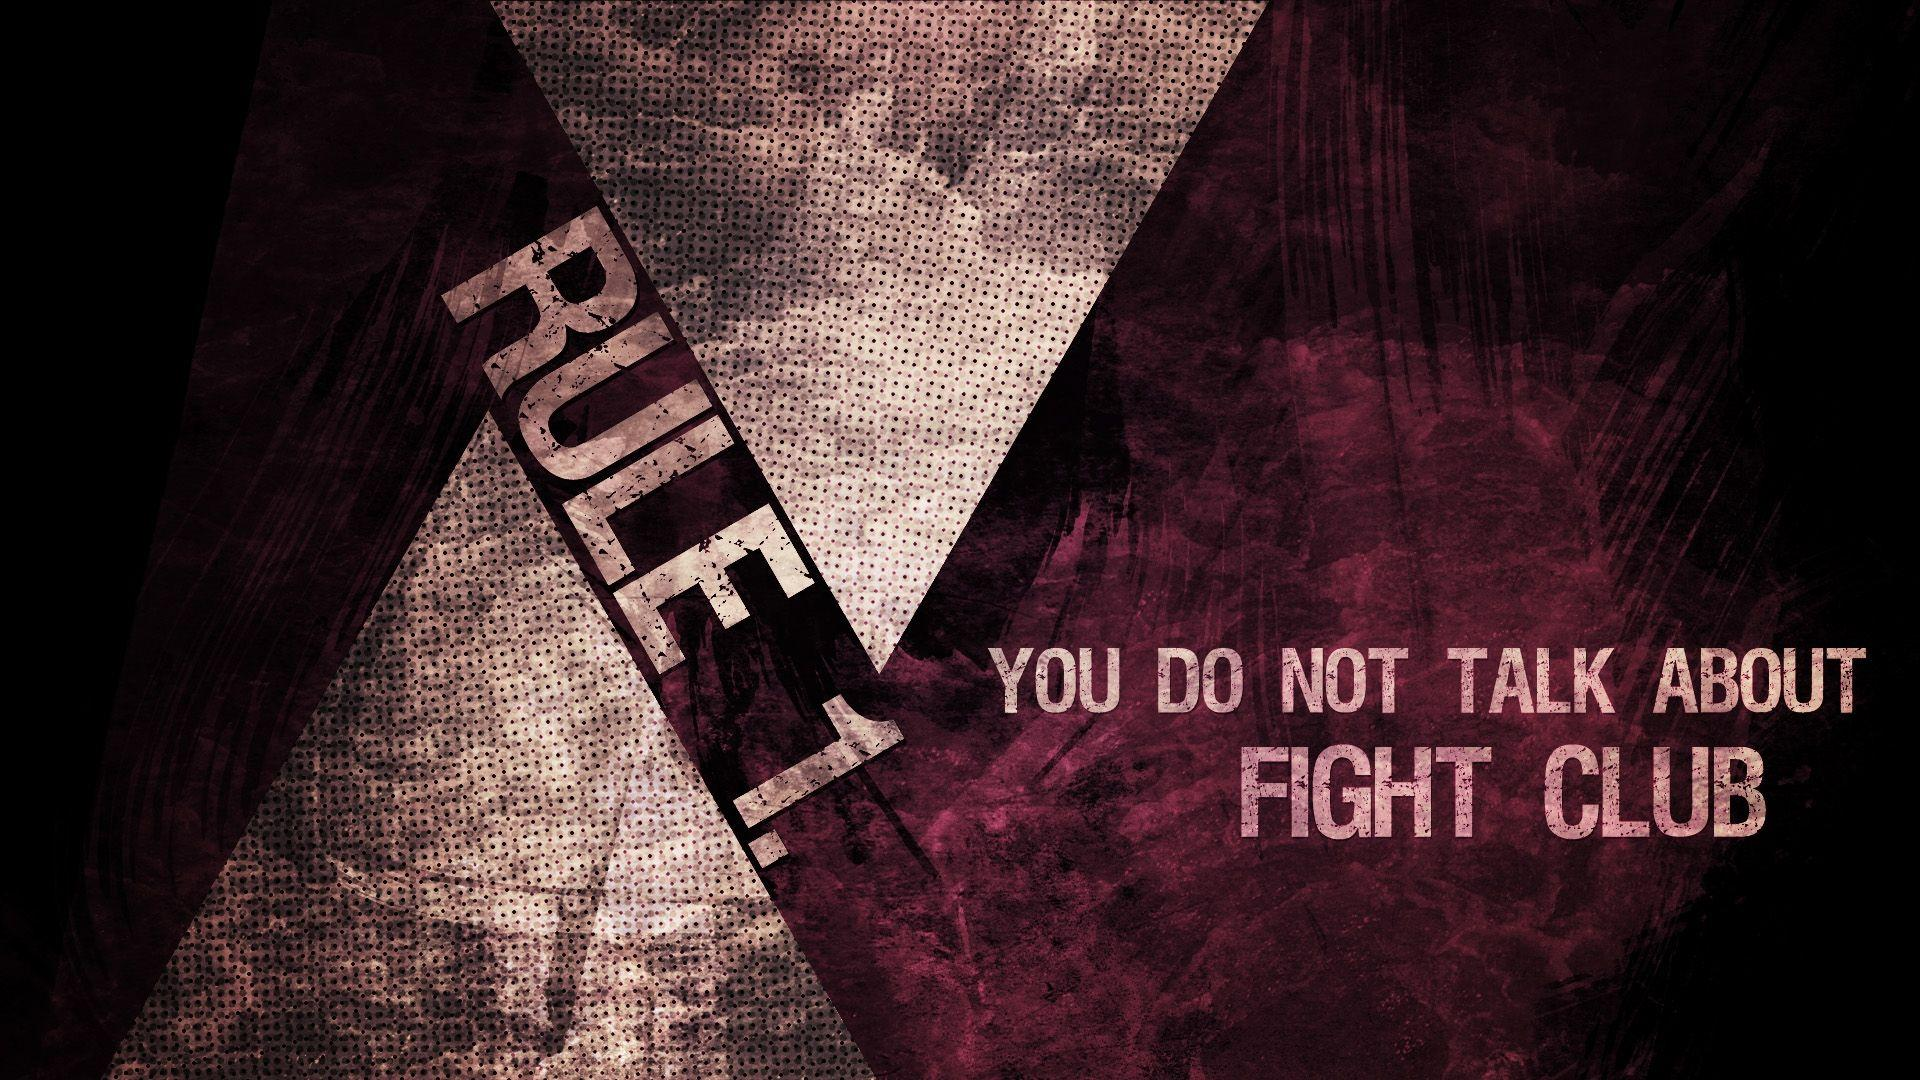 Download Wallpaper 1920x1080 fight club, rule, you do not talk about ...